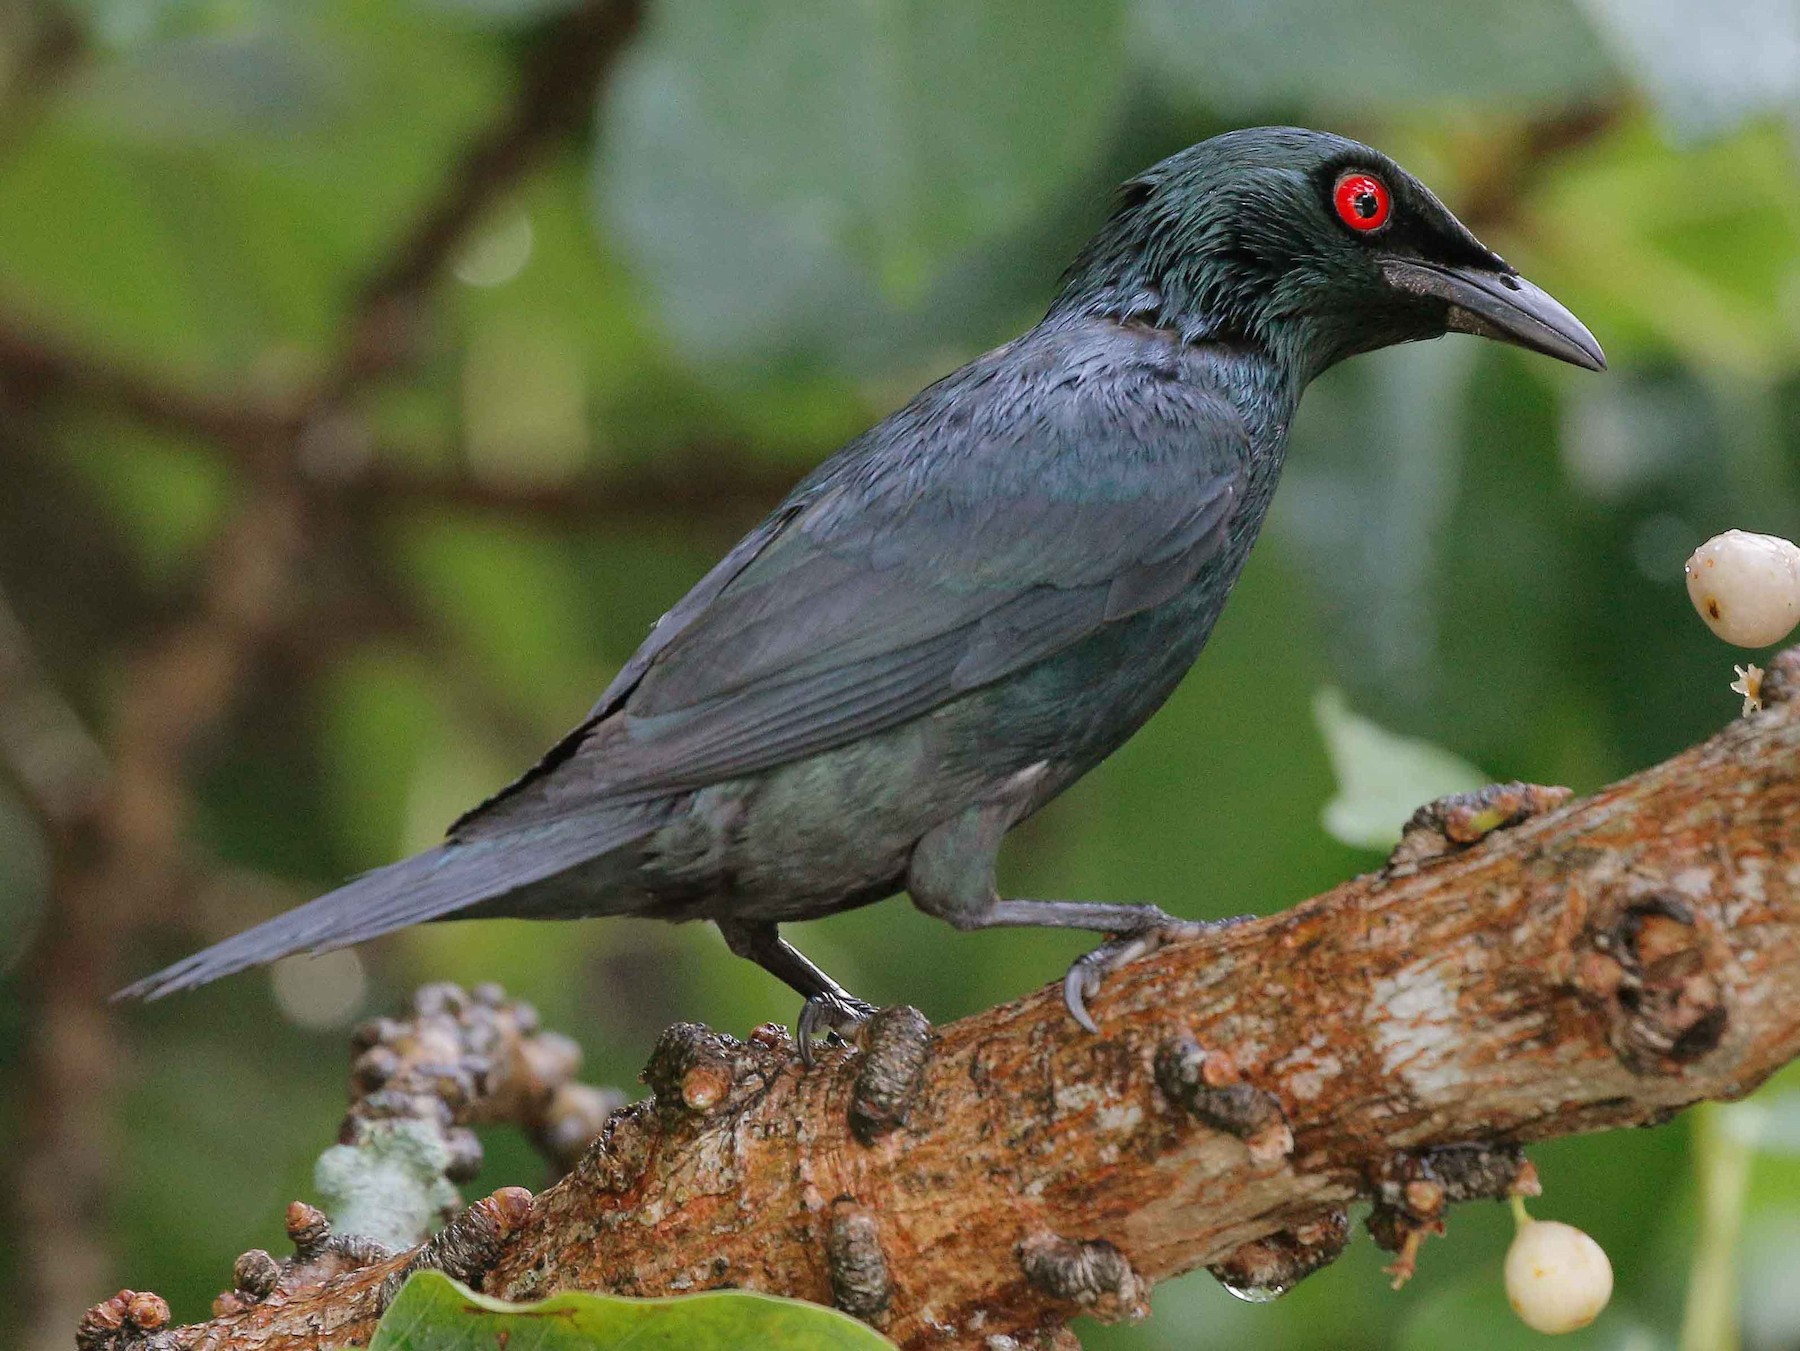 Asian Glossy Starling - Neoh Hor Kee